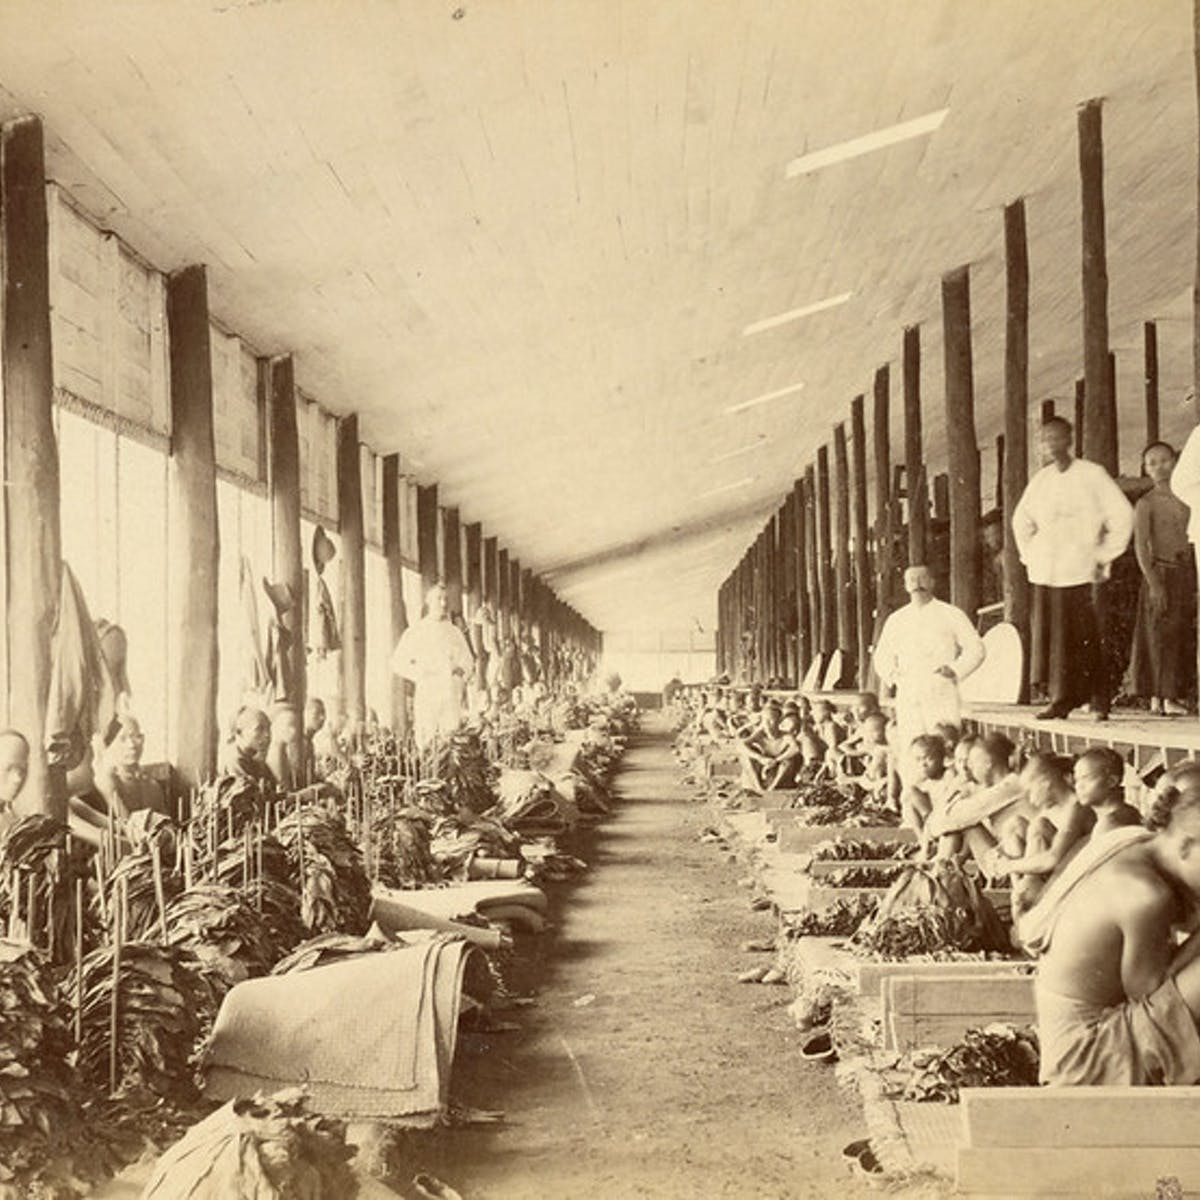 The Dark History Of Slavery And Racism In Indonesia During The